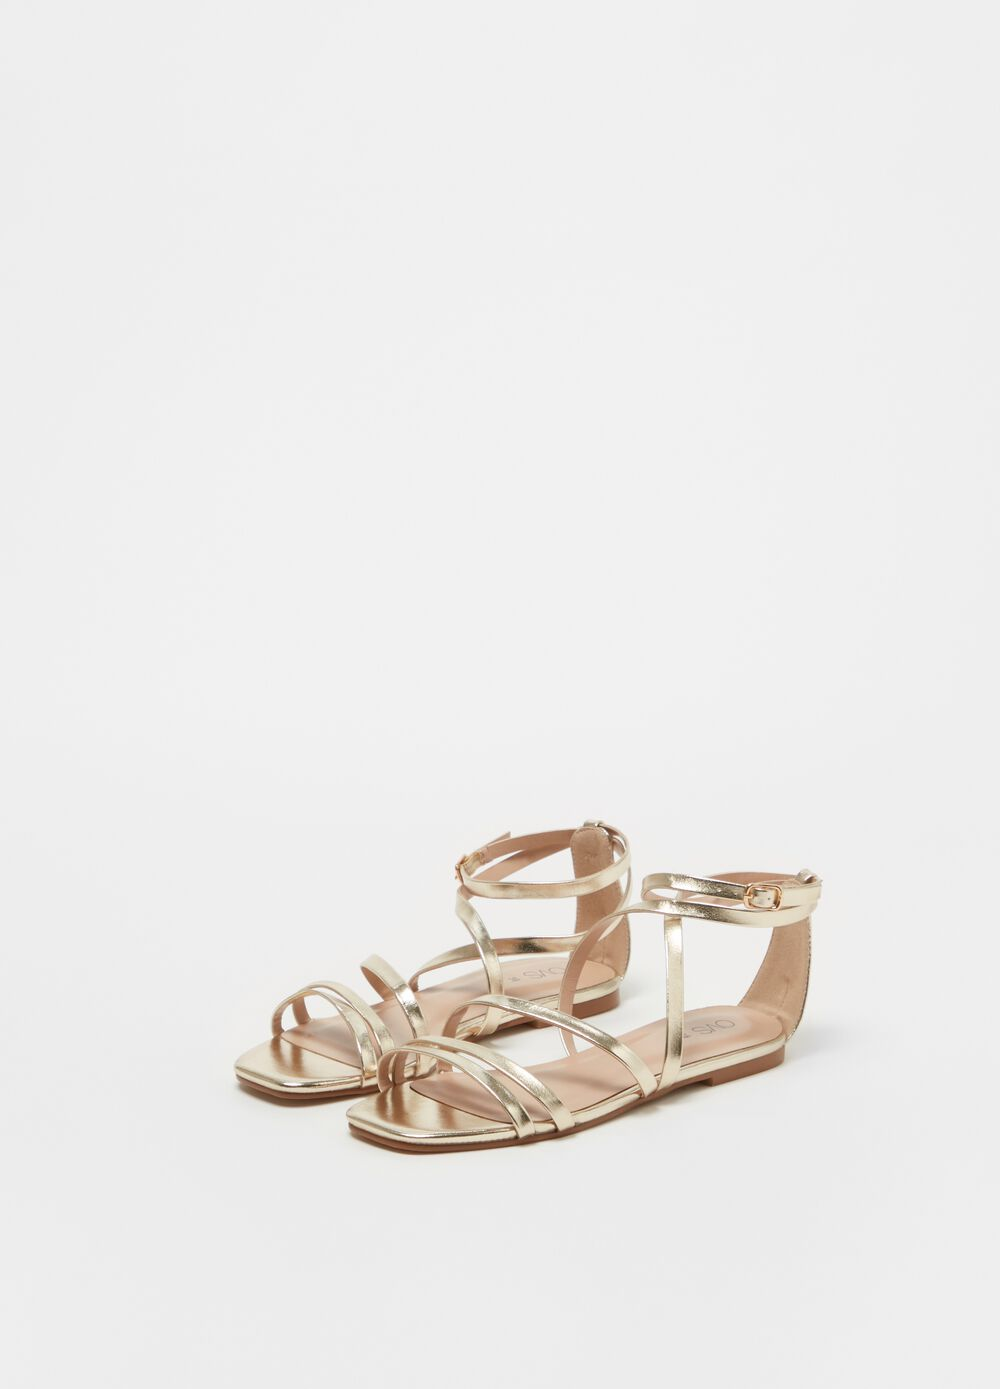 Sandals with solid colour straps